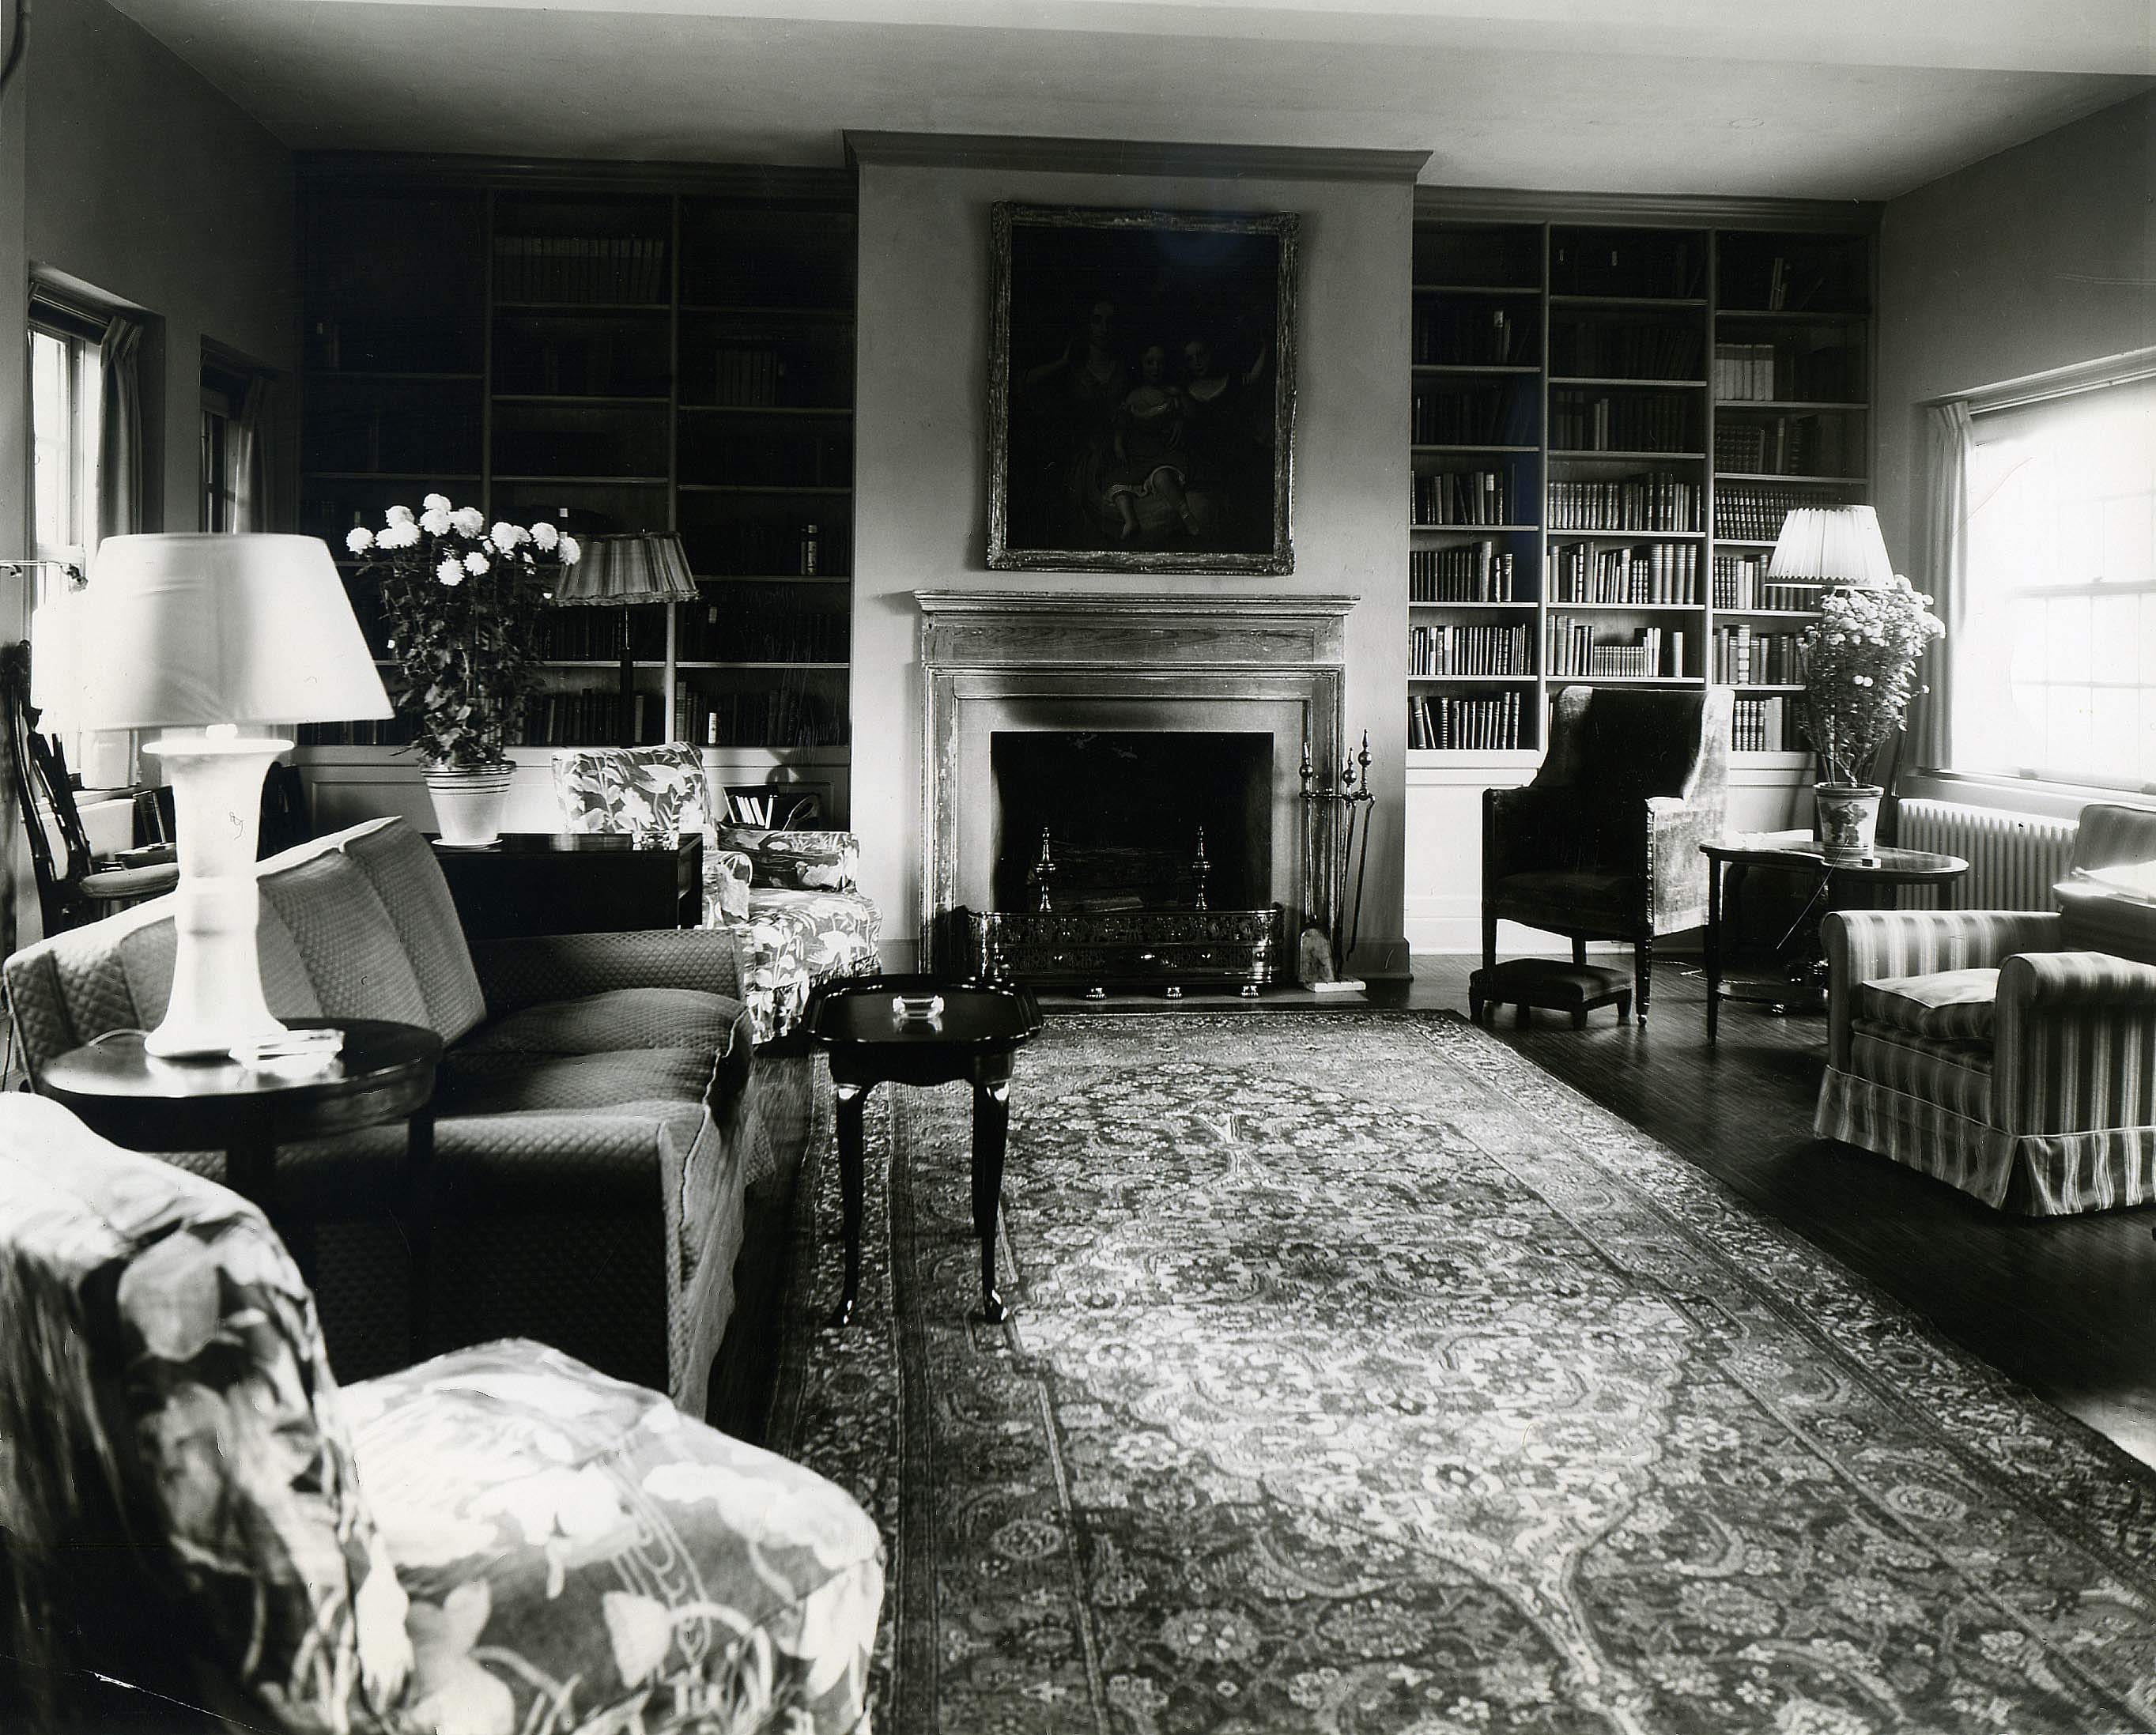 Fellows Building Living Room, 1953